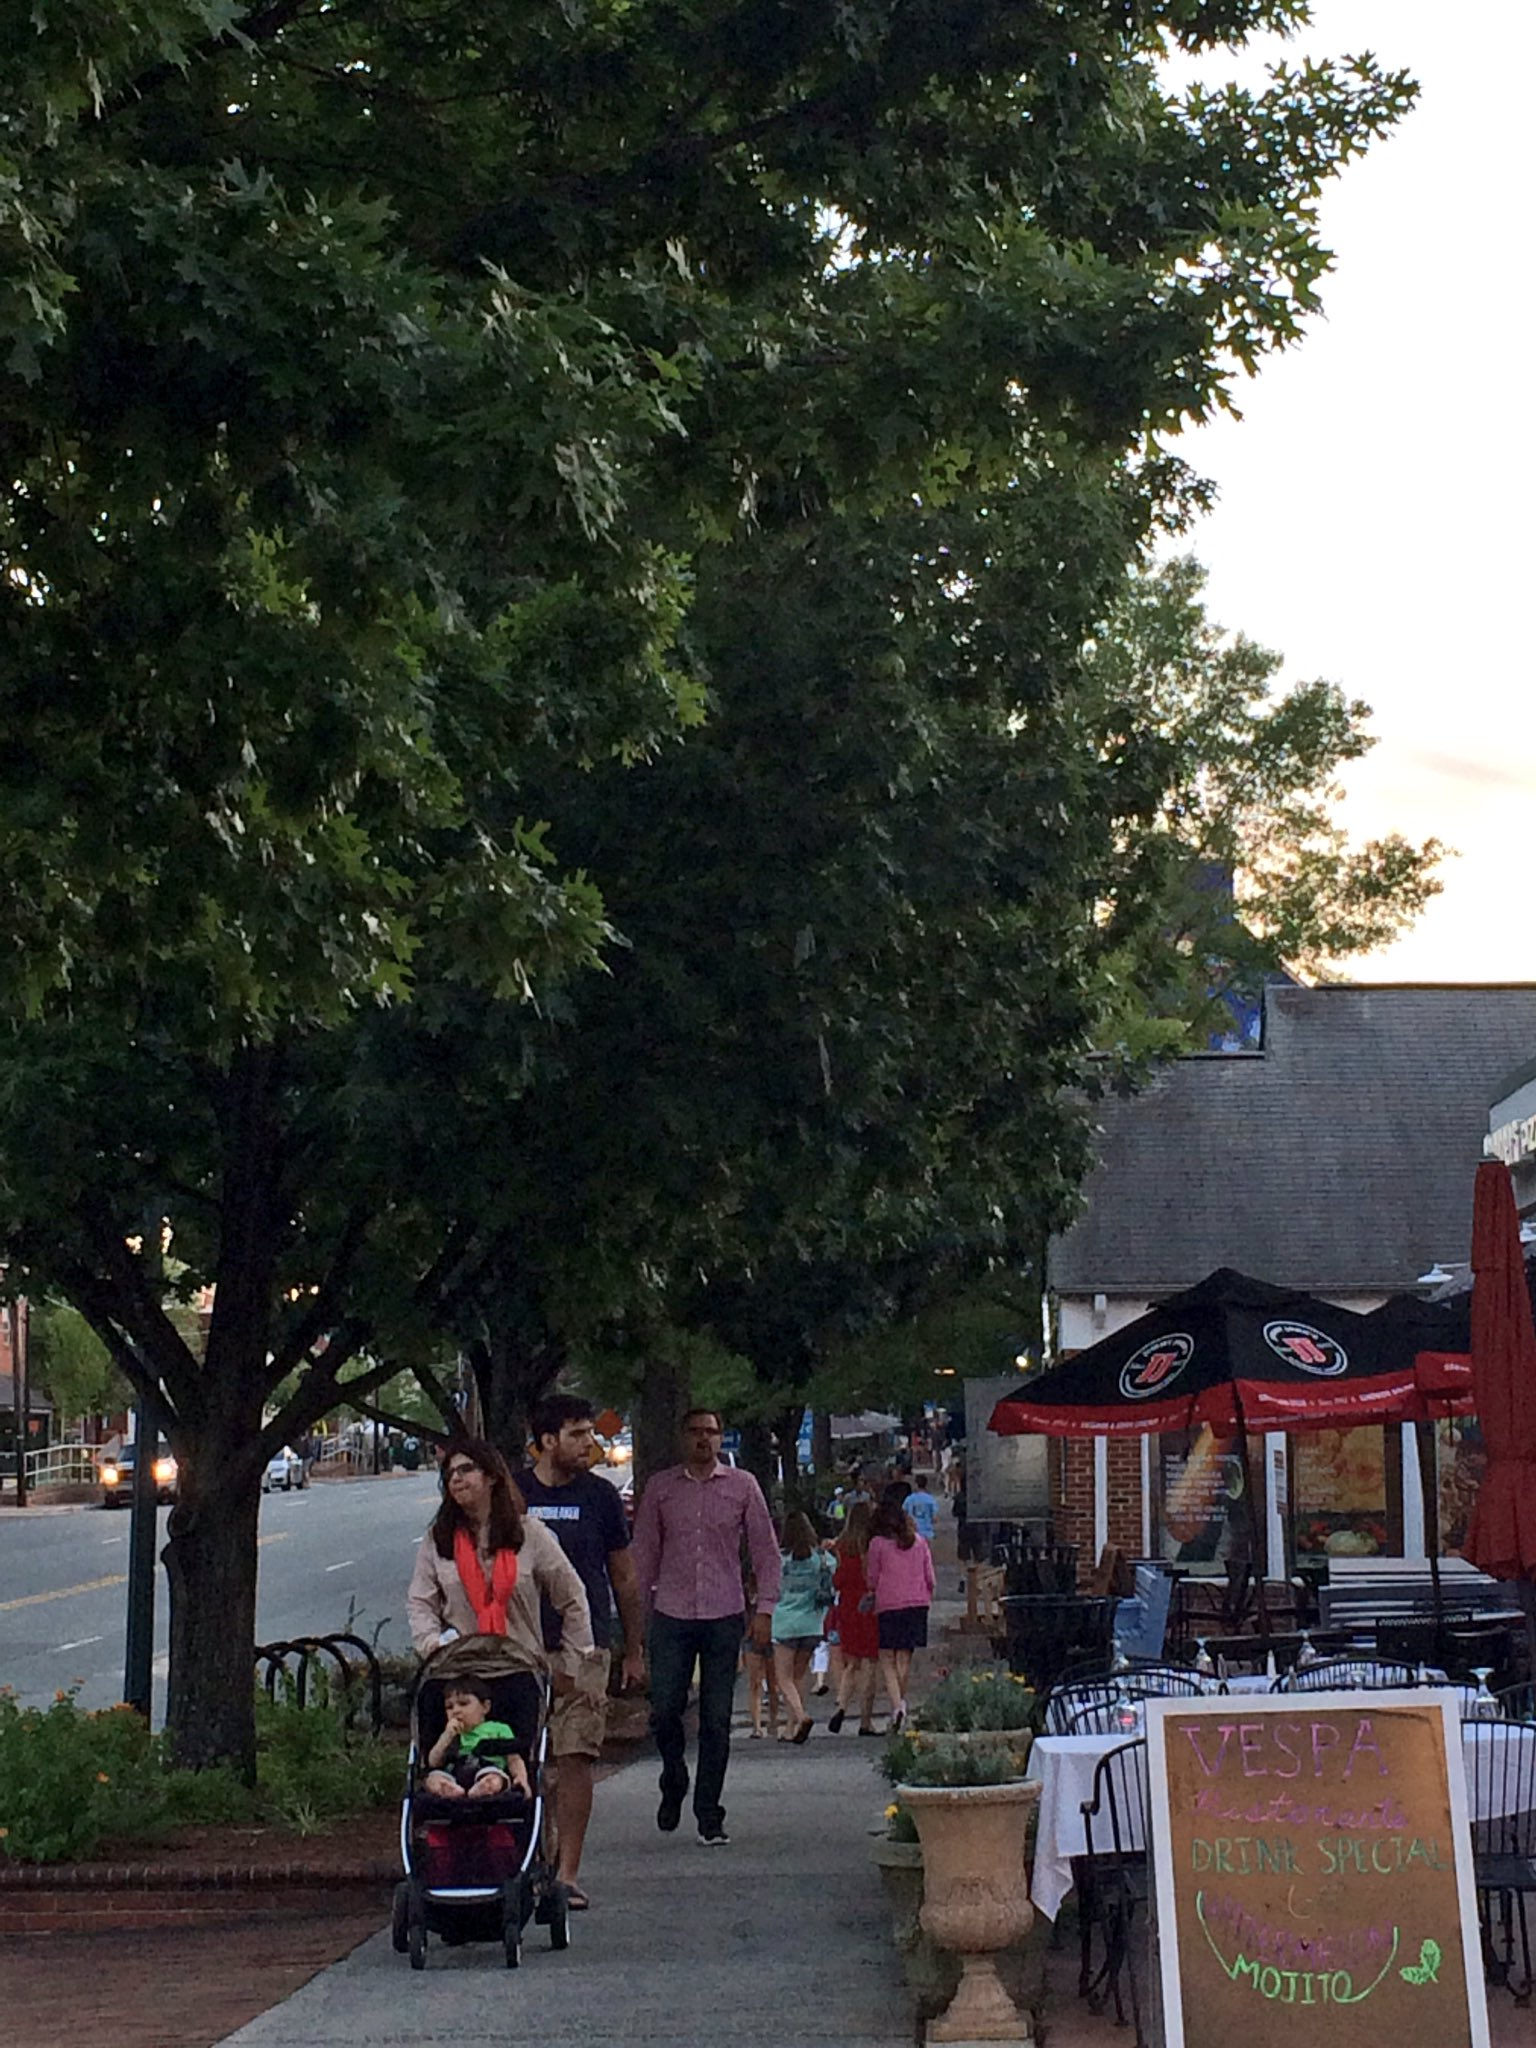 So many folks out enjoying a Saturday night in #ChapelHill #loveourdowntowns https://t.co/IlPPy0vzsd